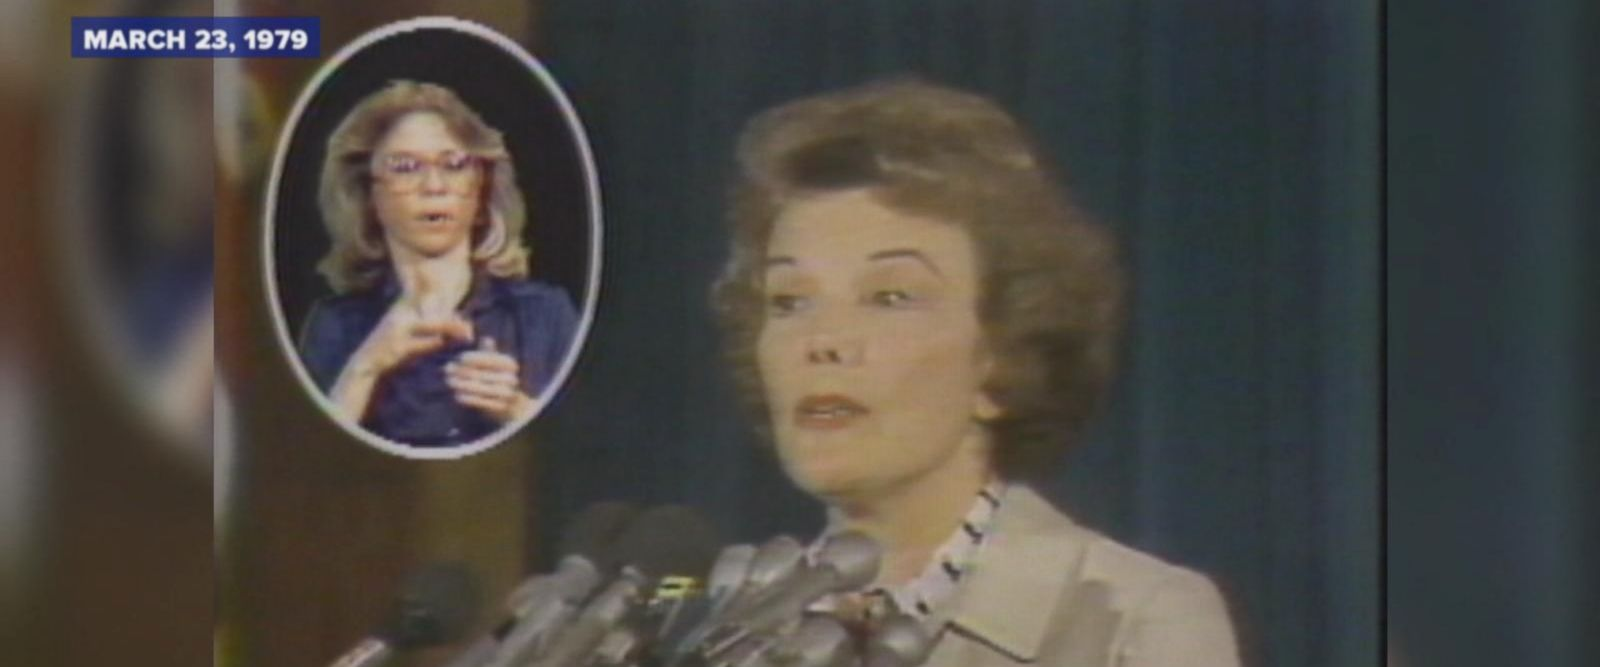 """Helen Keller said that if she could have her hearing or her sight back, she would have taken her hearing without hesitation,"" Actress Nanette Fabray, who is hearing impaired herself, said during a speech."